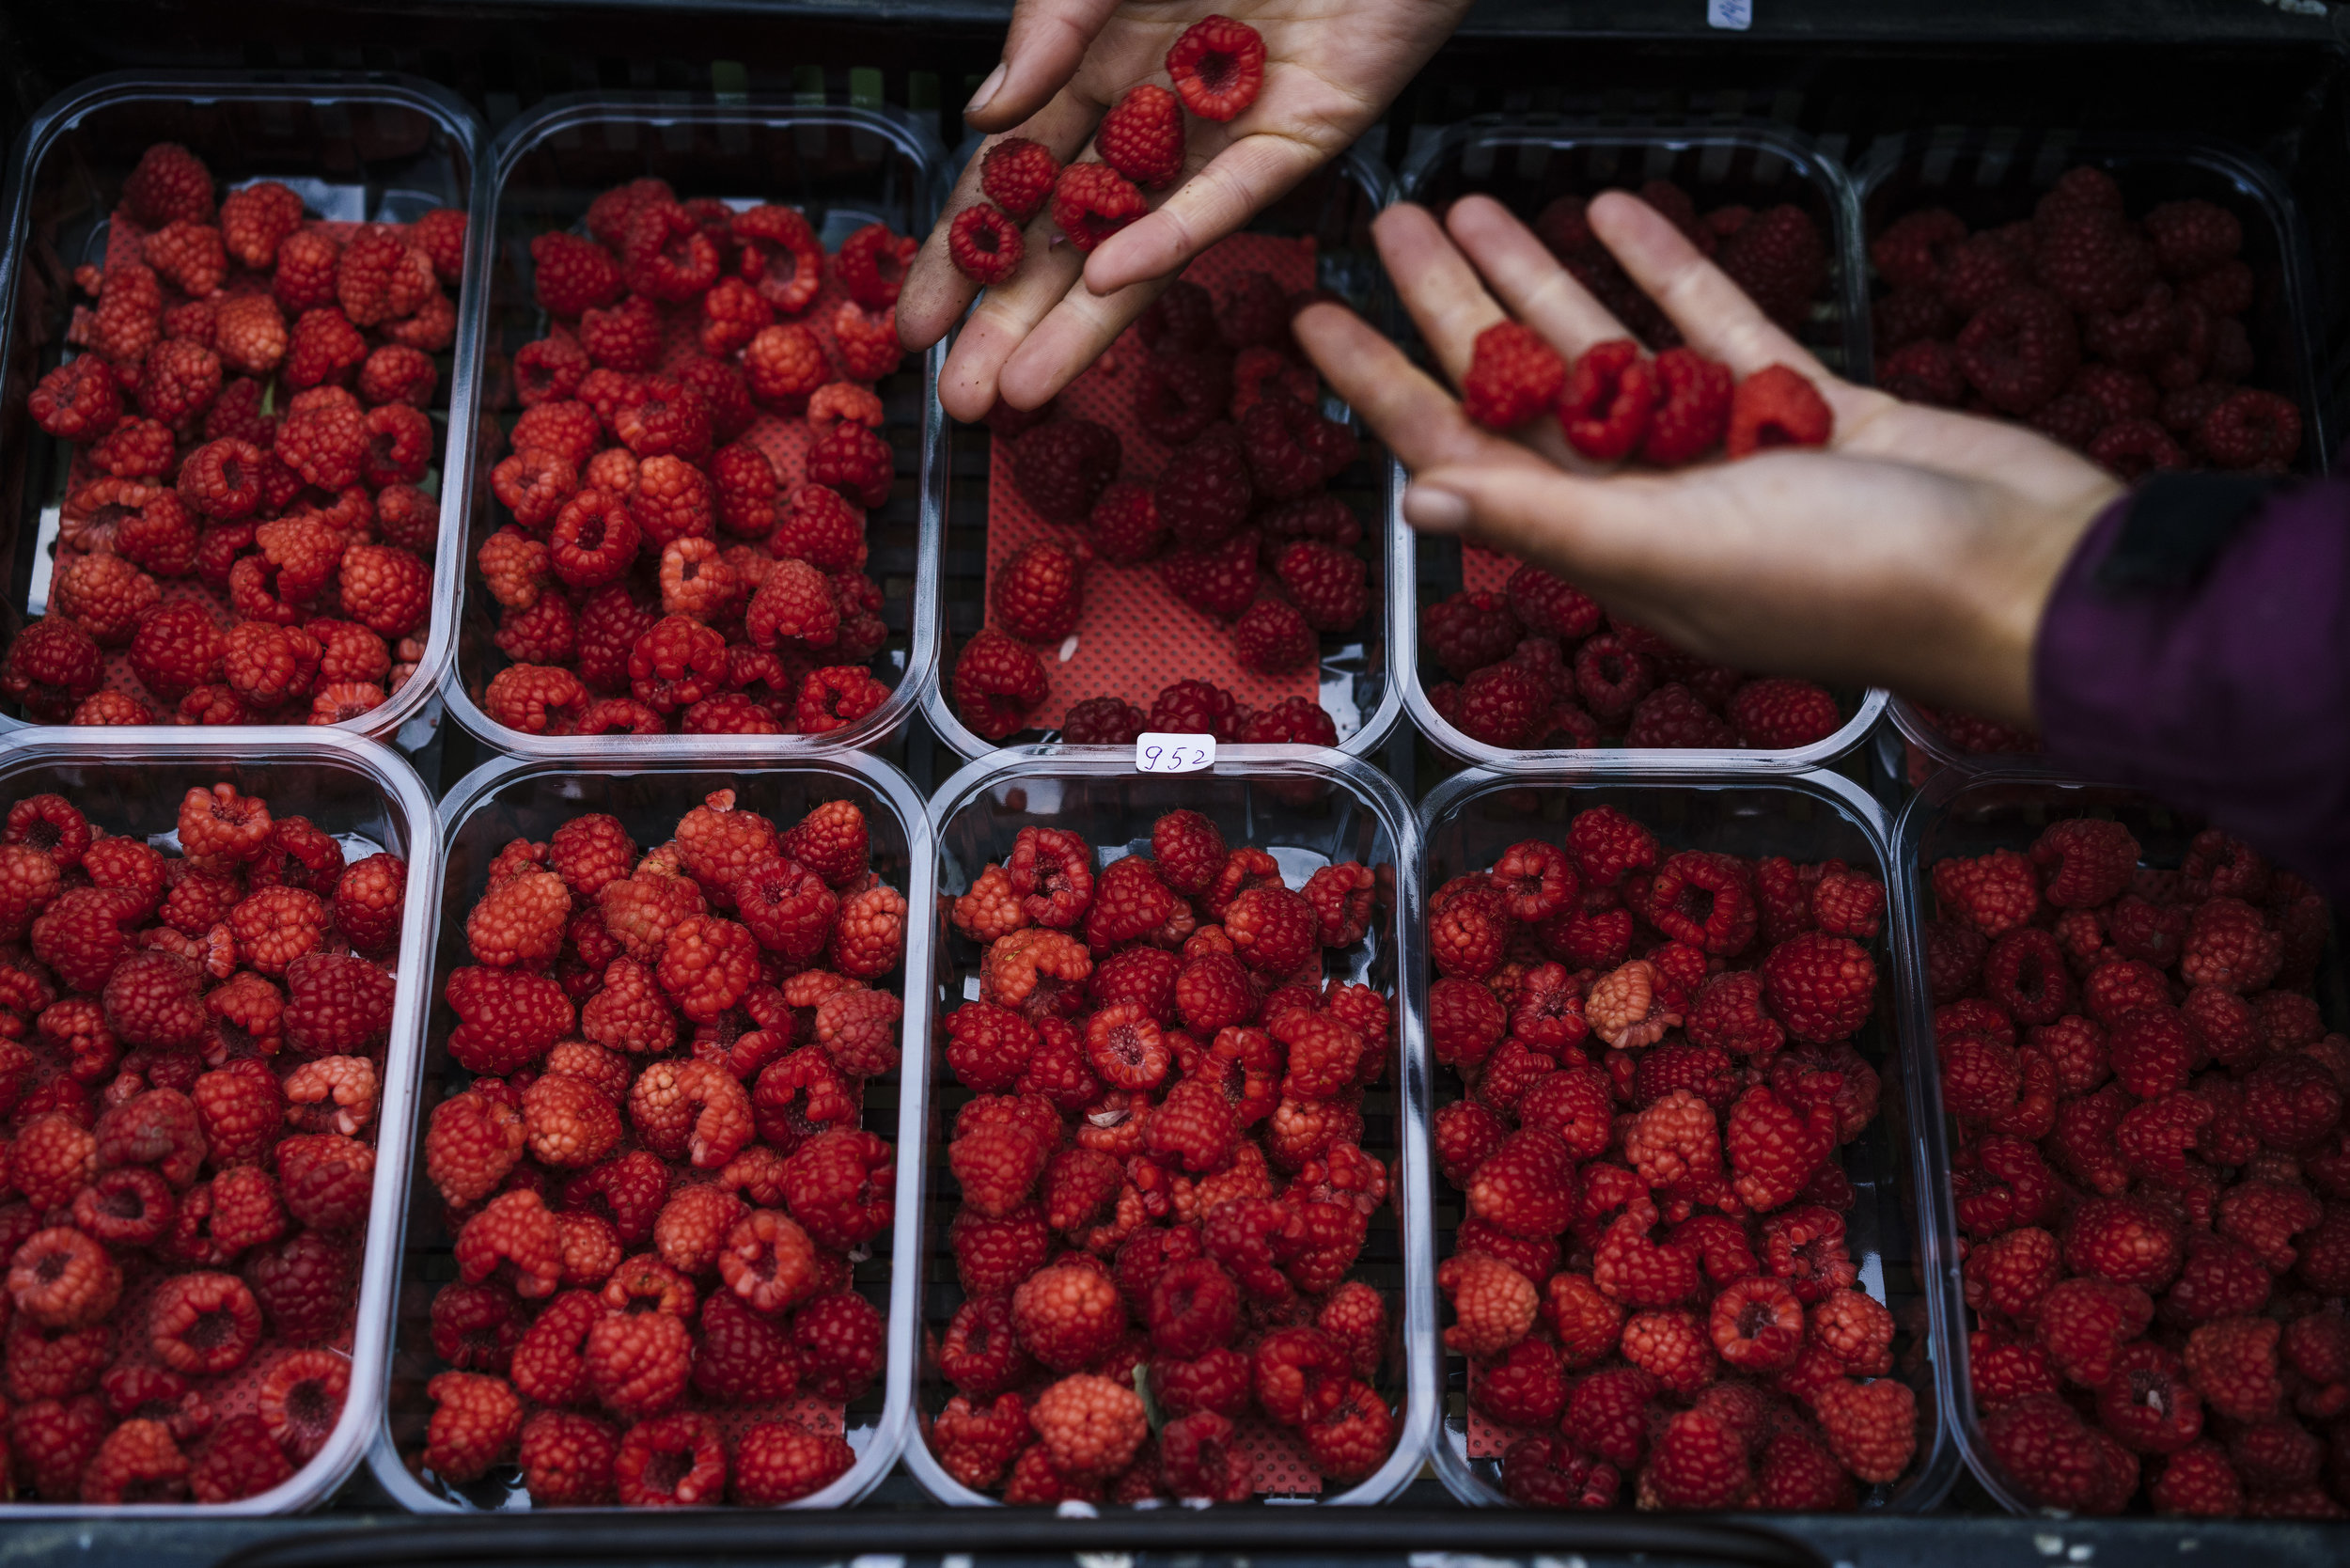 Bulgarian fruit picker Elena Hoola sorts freshly picked raspberries into punnets in one of the tunnels at Oakdene Farm, a fruit and vegetable farm owned by W.B. Chambers & Son in Langley, Kent, England, Thursday, Nov. 16, 2017. (David Azia for NBC News)